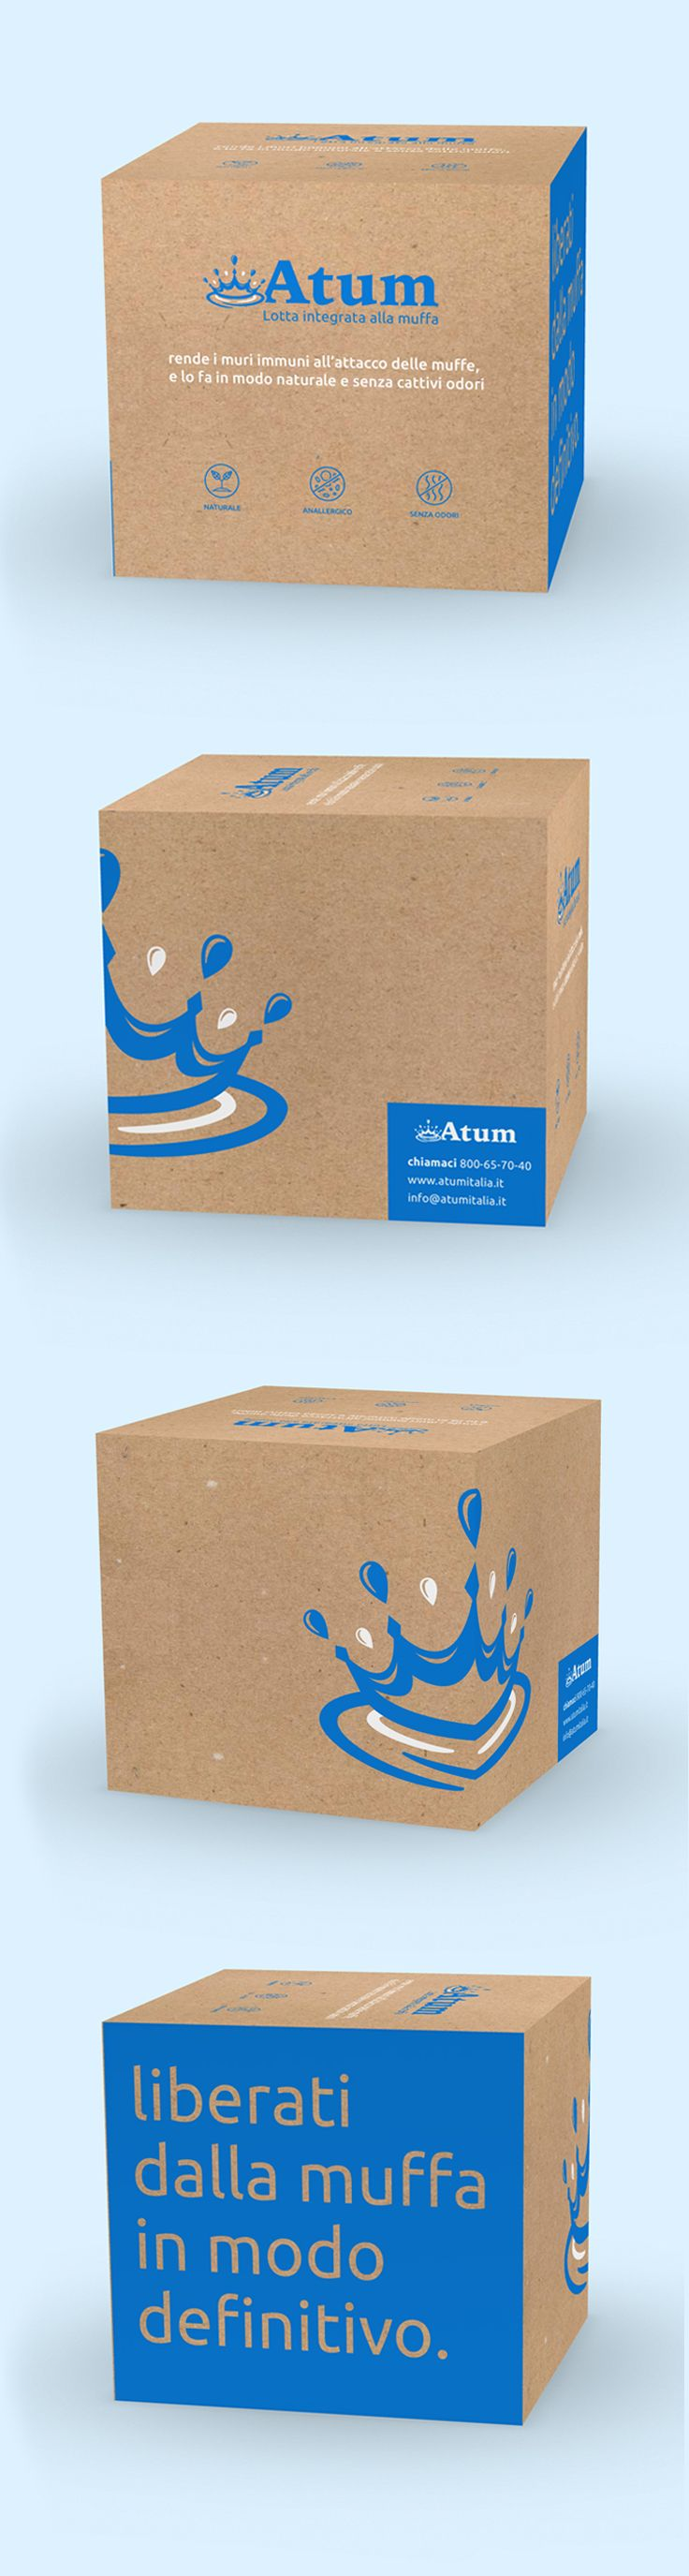 Atum Packaging, box design, 2-colour packaging, blue packaging, cardboard packaging, natural product, biodegradable product, mould control product – Graphic Design by Uniful Design  unifuldesign.com